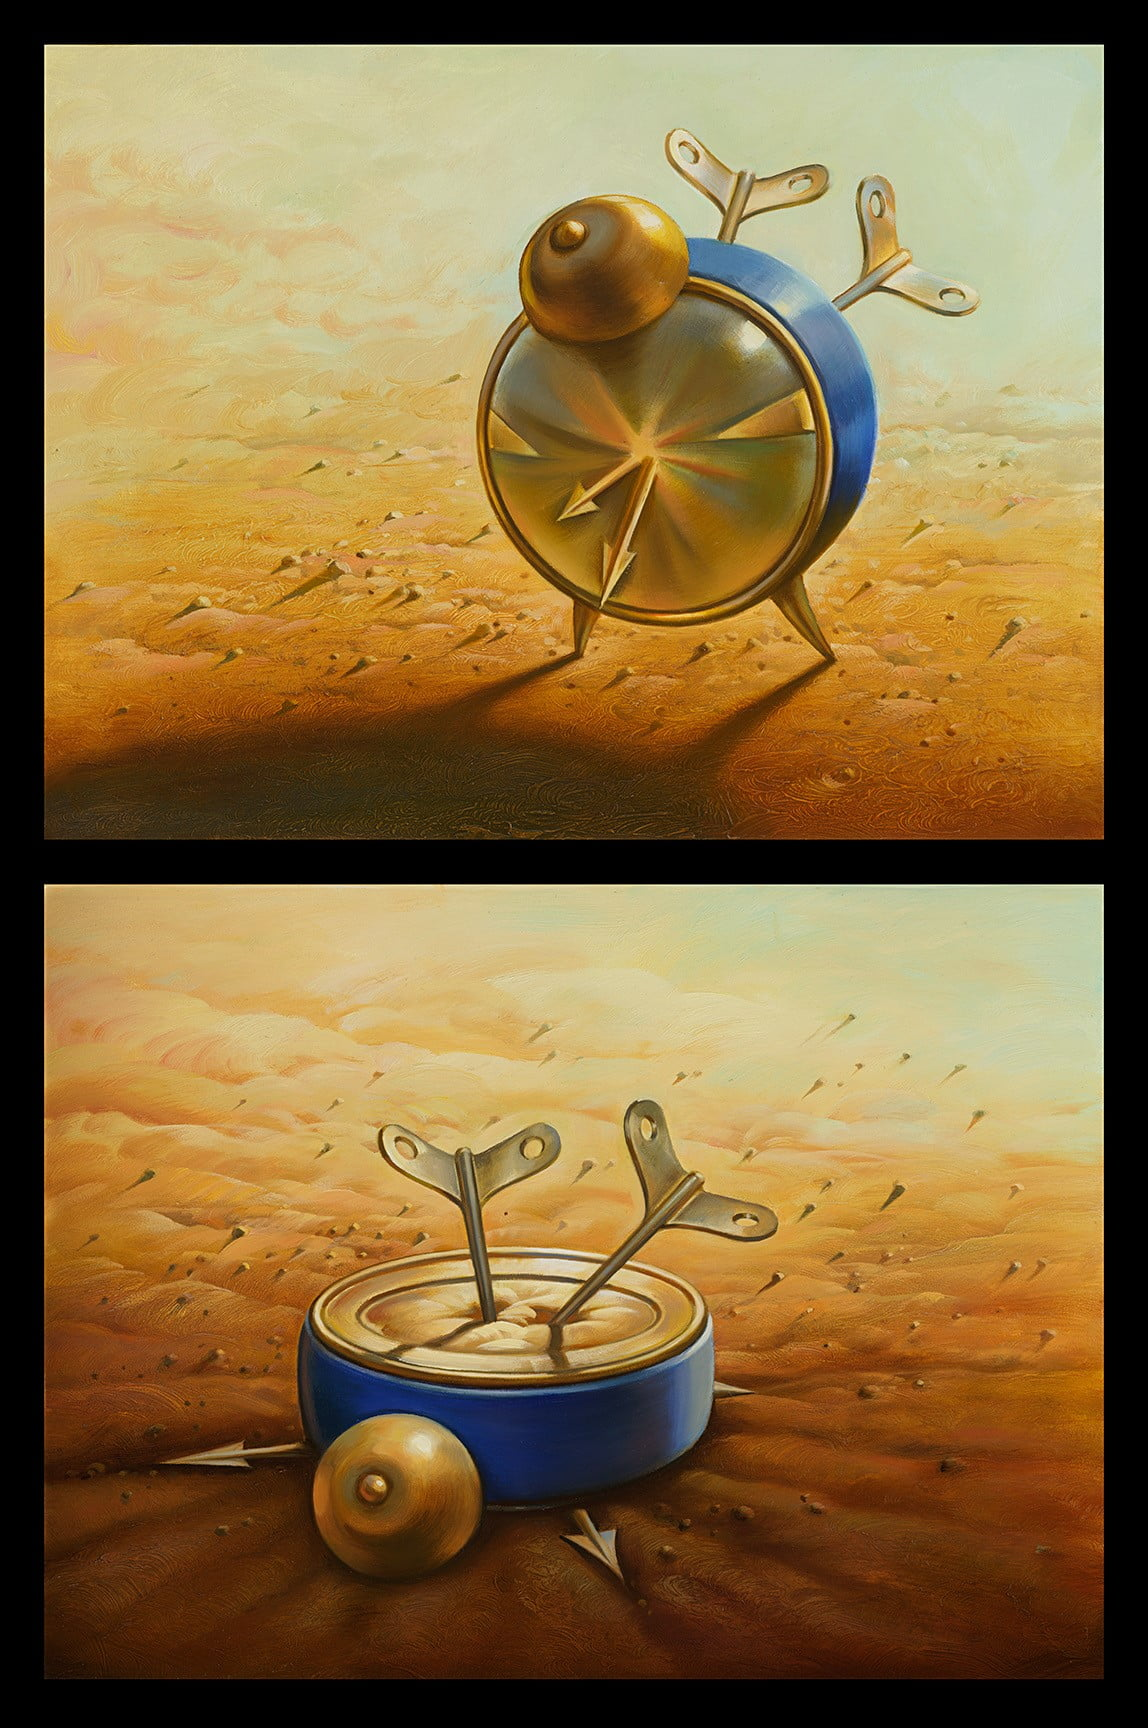 Kill Time by Vladimir Kush